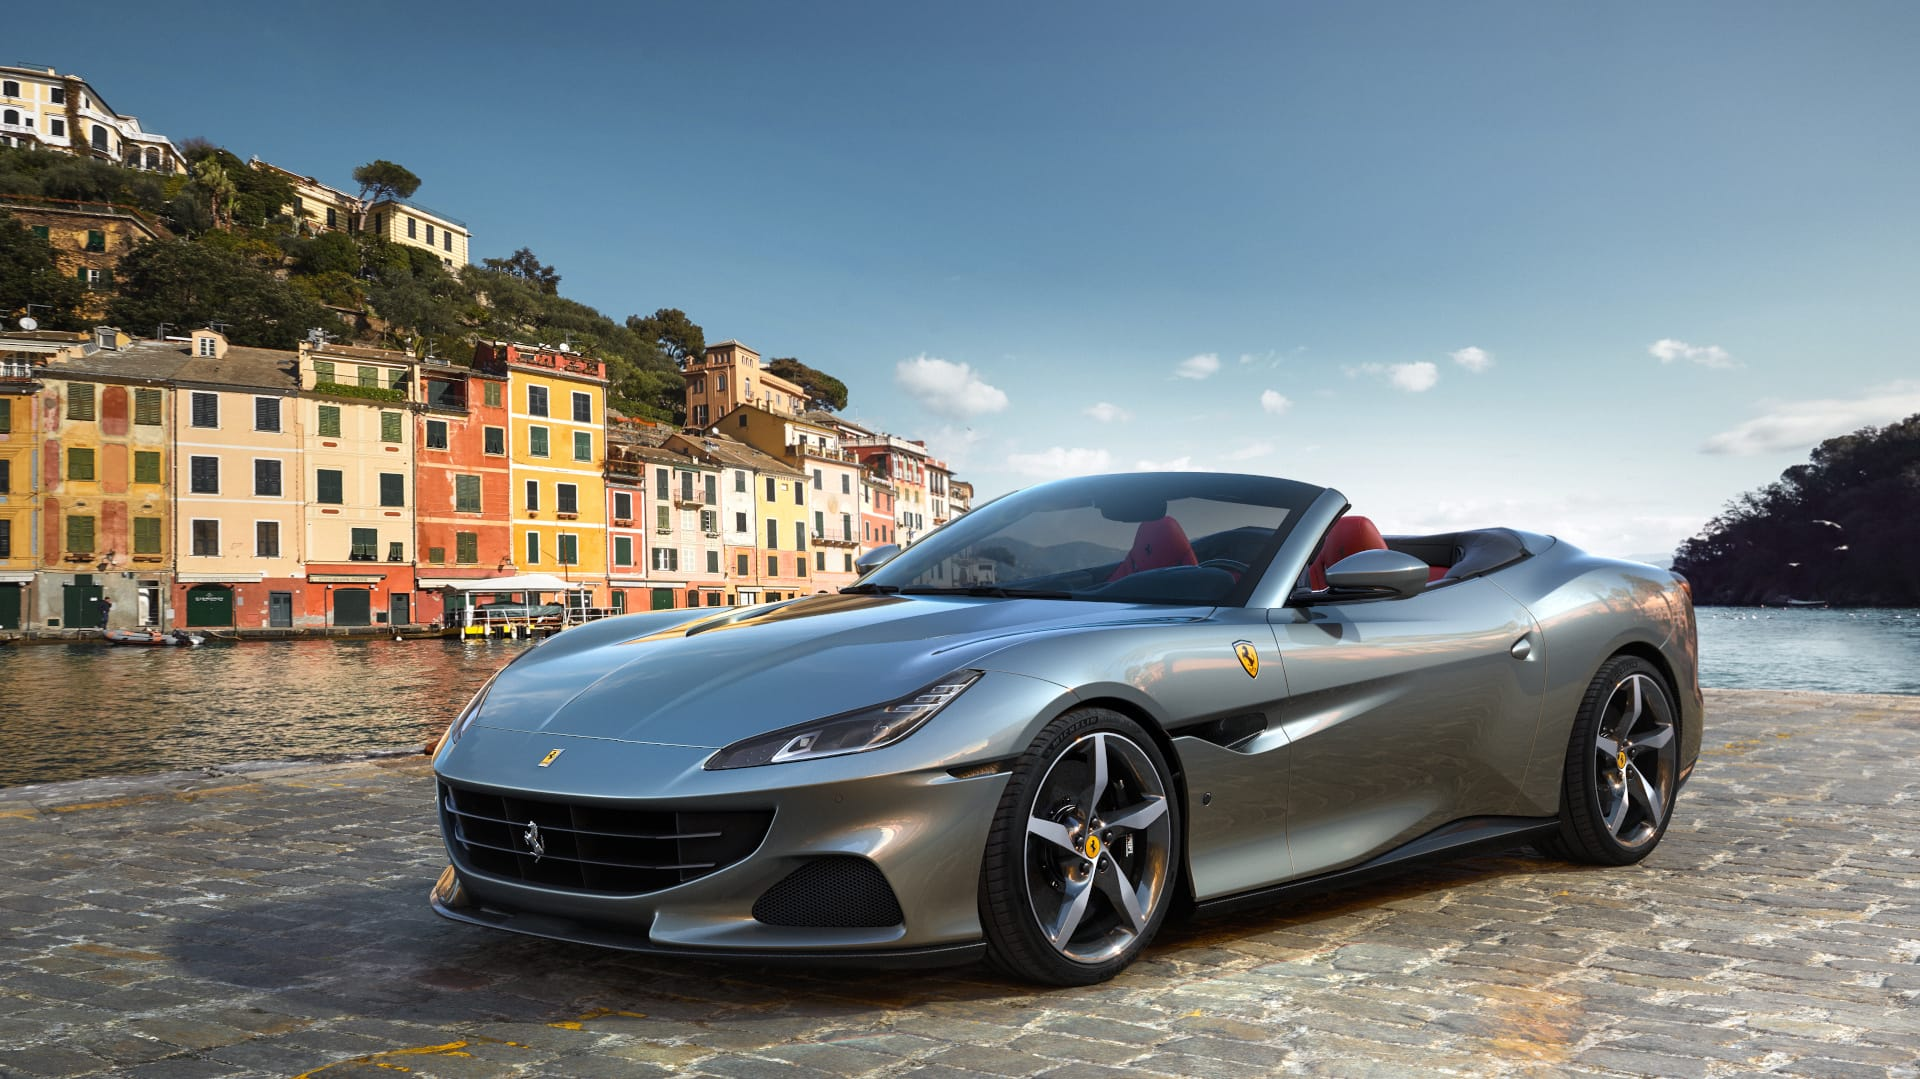 Configure Your Ferrari Ferrari Official Car Configurator